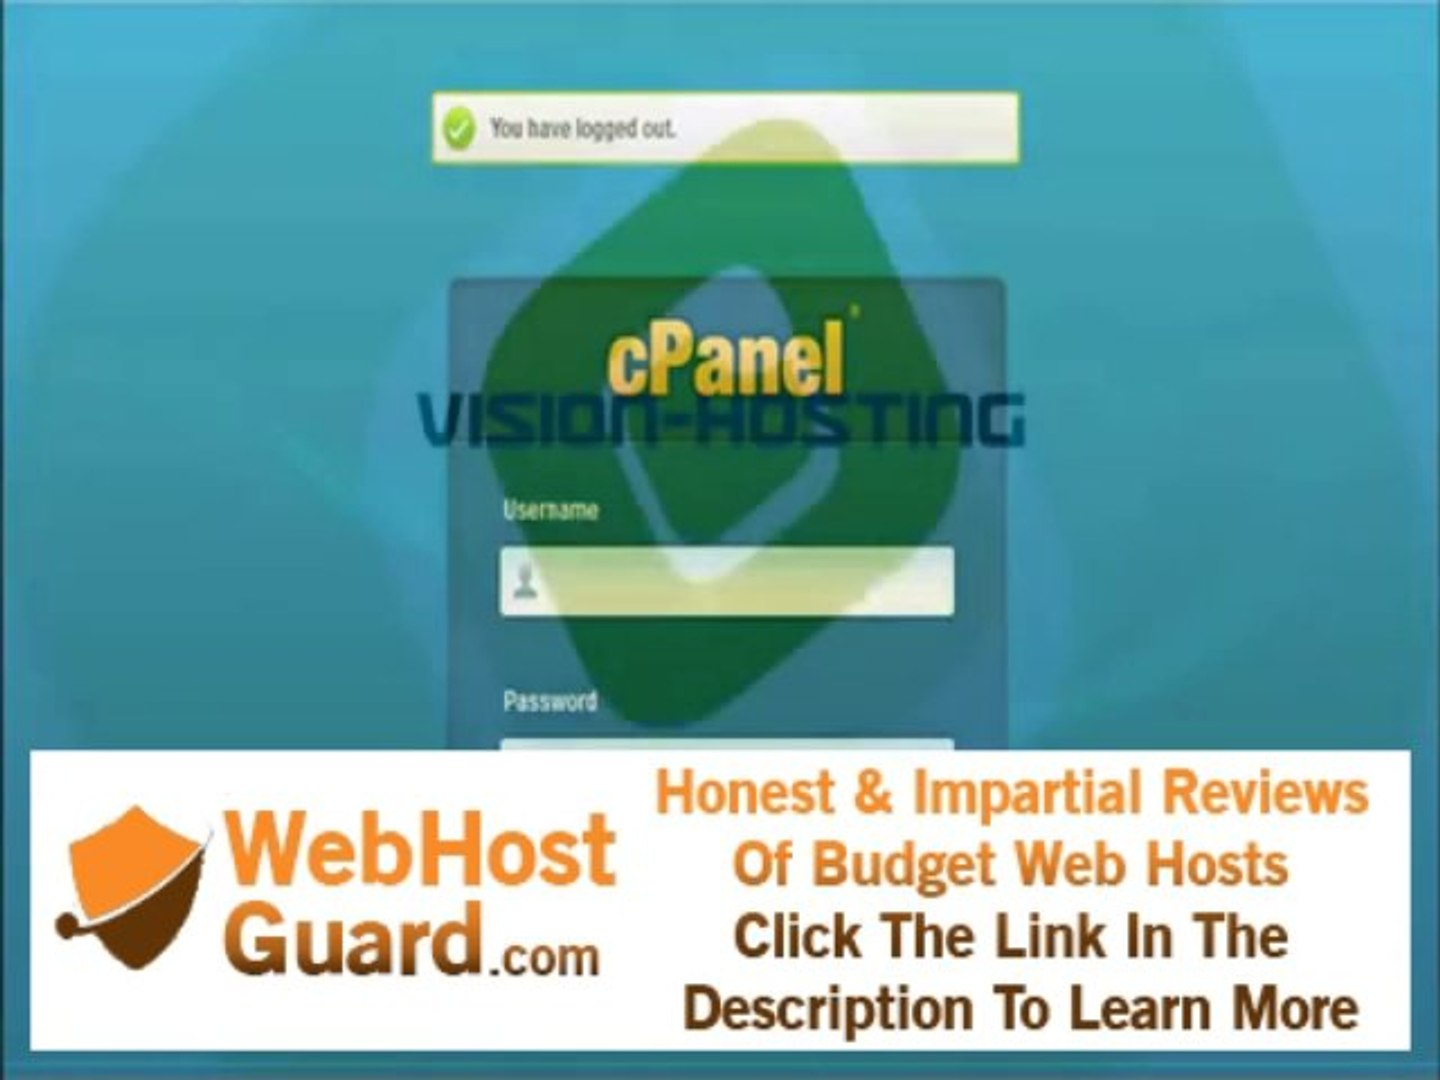 How to Login to cPanel Tutorial - Vision-Hosting